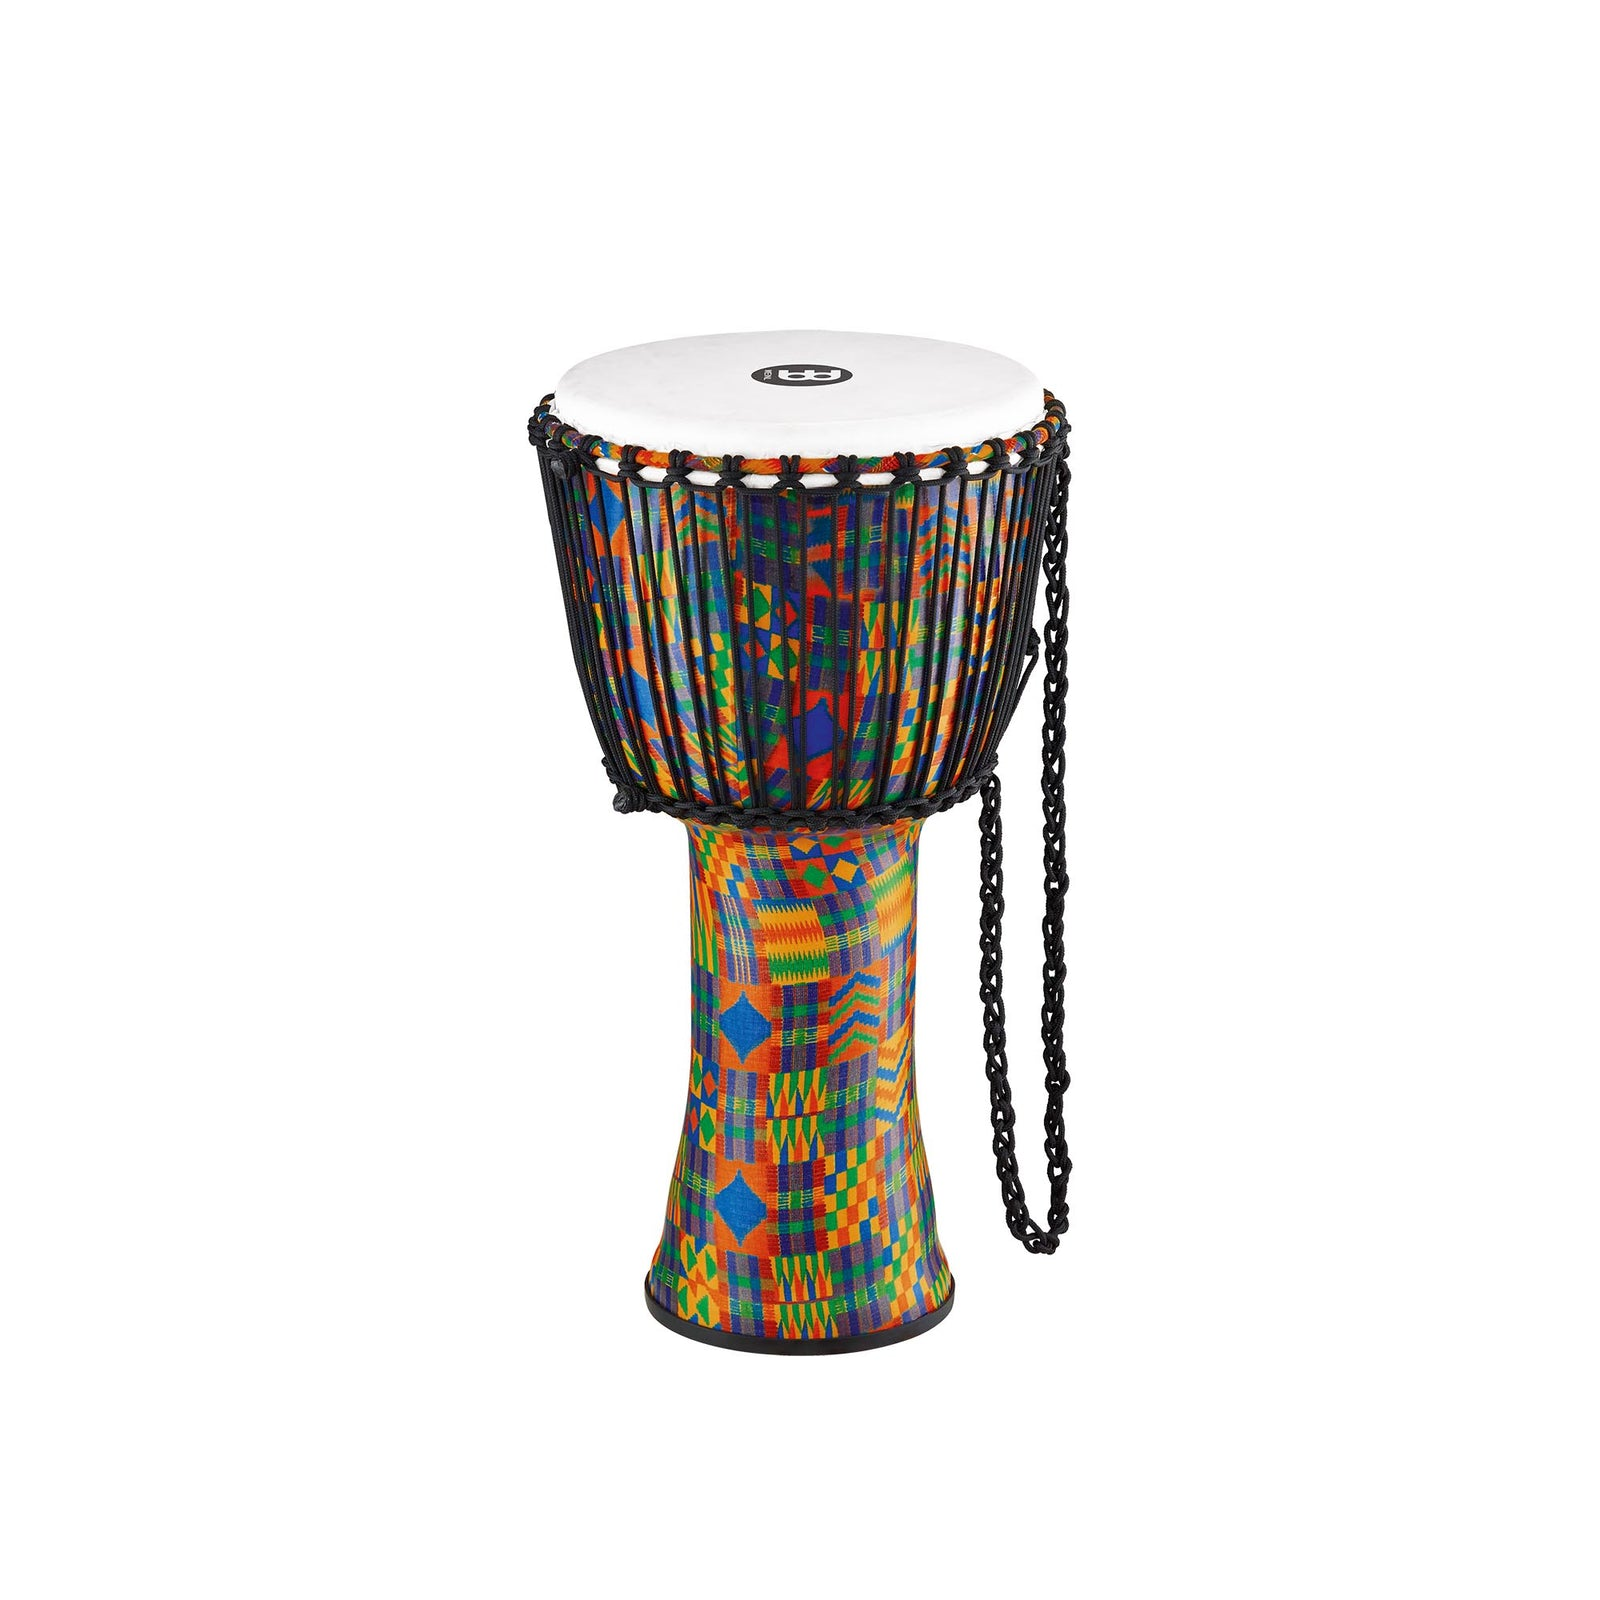 "Meinl 12"" Travel Djembe - Rope-Tuned - Synthetic - Kenyan Quilt"